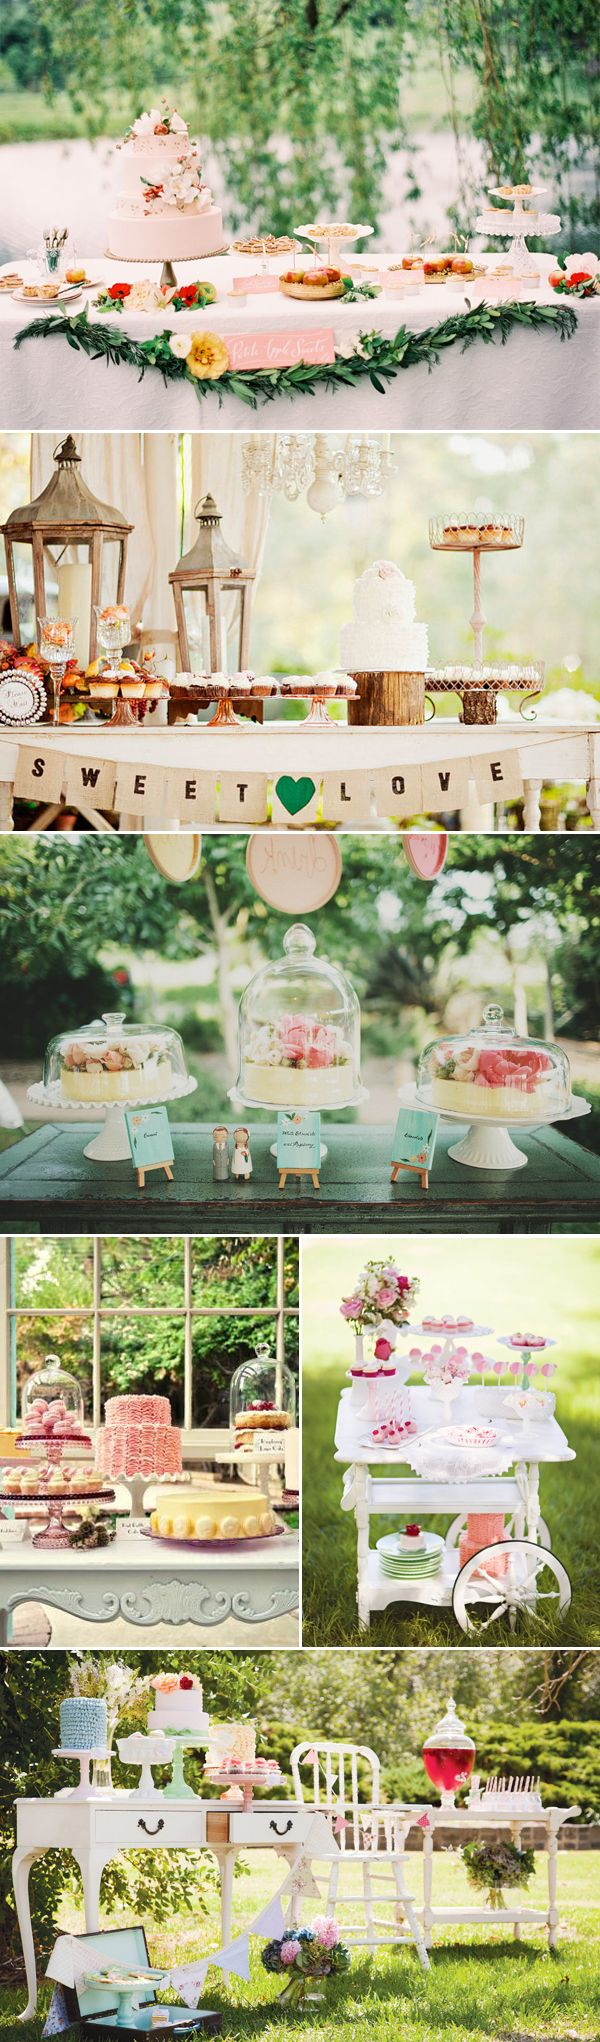 Decorating a cake or dessert table at your wedding is one of the most exciting parts of wedding decoration where you can really show off your creativity. For those of you with a sweet tooth and an army of talented bakers among your family and friends, a dessert table is also a great DIY option. …